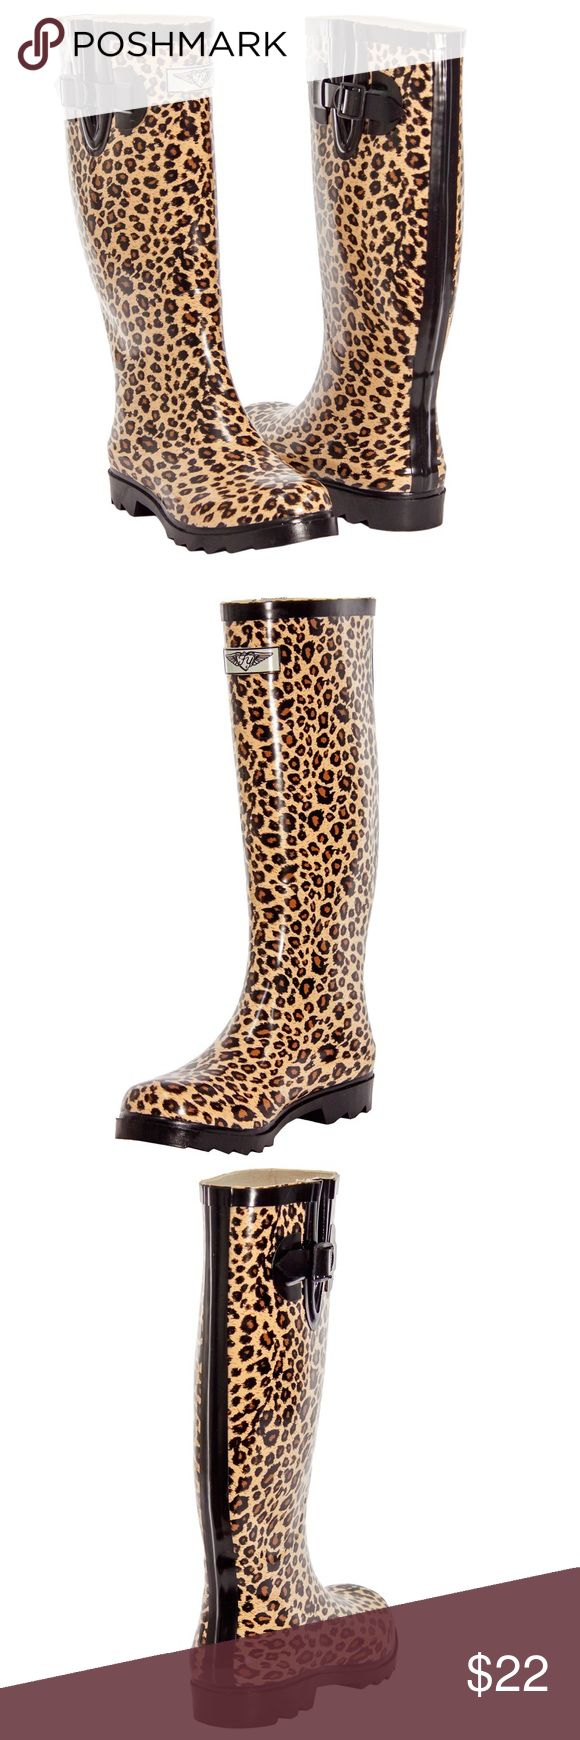 """Women Animal Print Rubber Rainboots RB1402 Enjoy rainy weather in stylish ladies' rainboots! 100% rubber, full cotton lining. Whatever you call them- wellies, galoshes, rainboots or sluggers, your feet are sure to stay dry while exploring puddles or gardening! Run half a size large to accommodate a thick sock. Not made for wide calves. calf circumference approximately 15"""" Forever Young Shoes Winter & Rain Boots"""